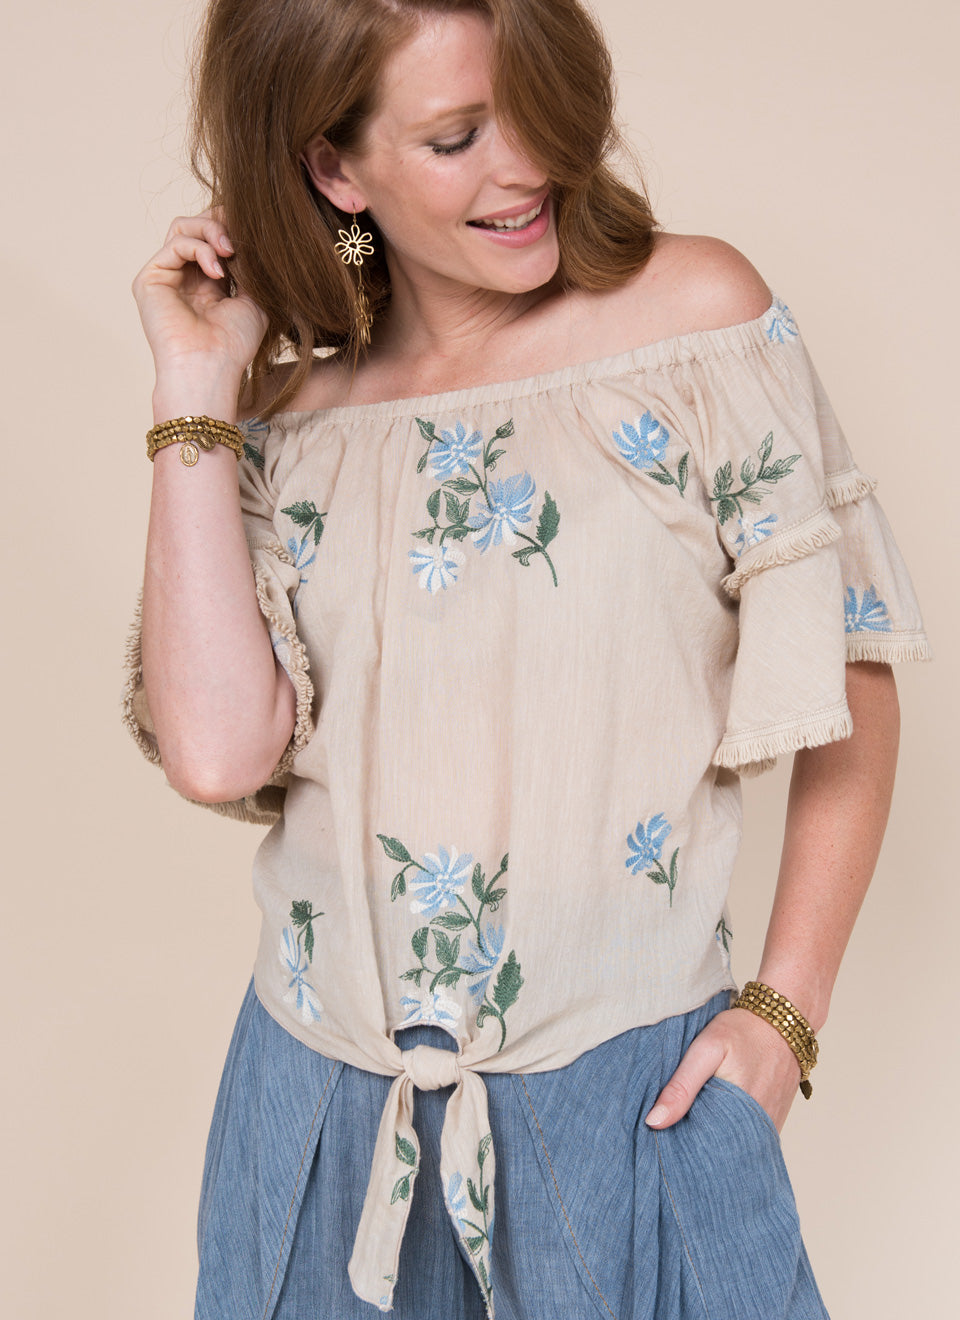 Ivy jane embroidered off the shoulder top 6whiskey six whisky